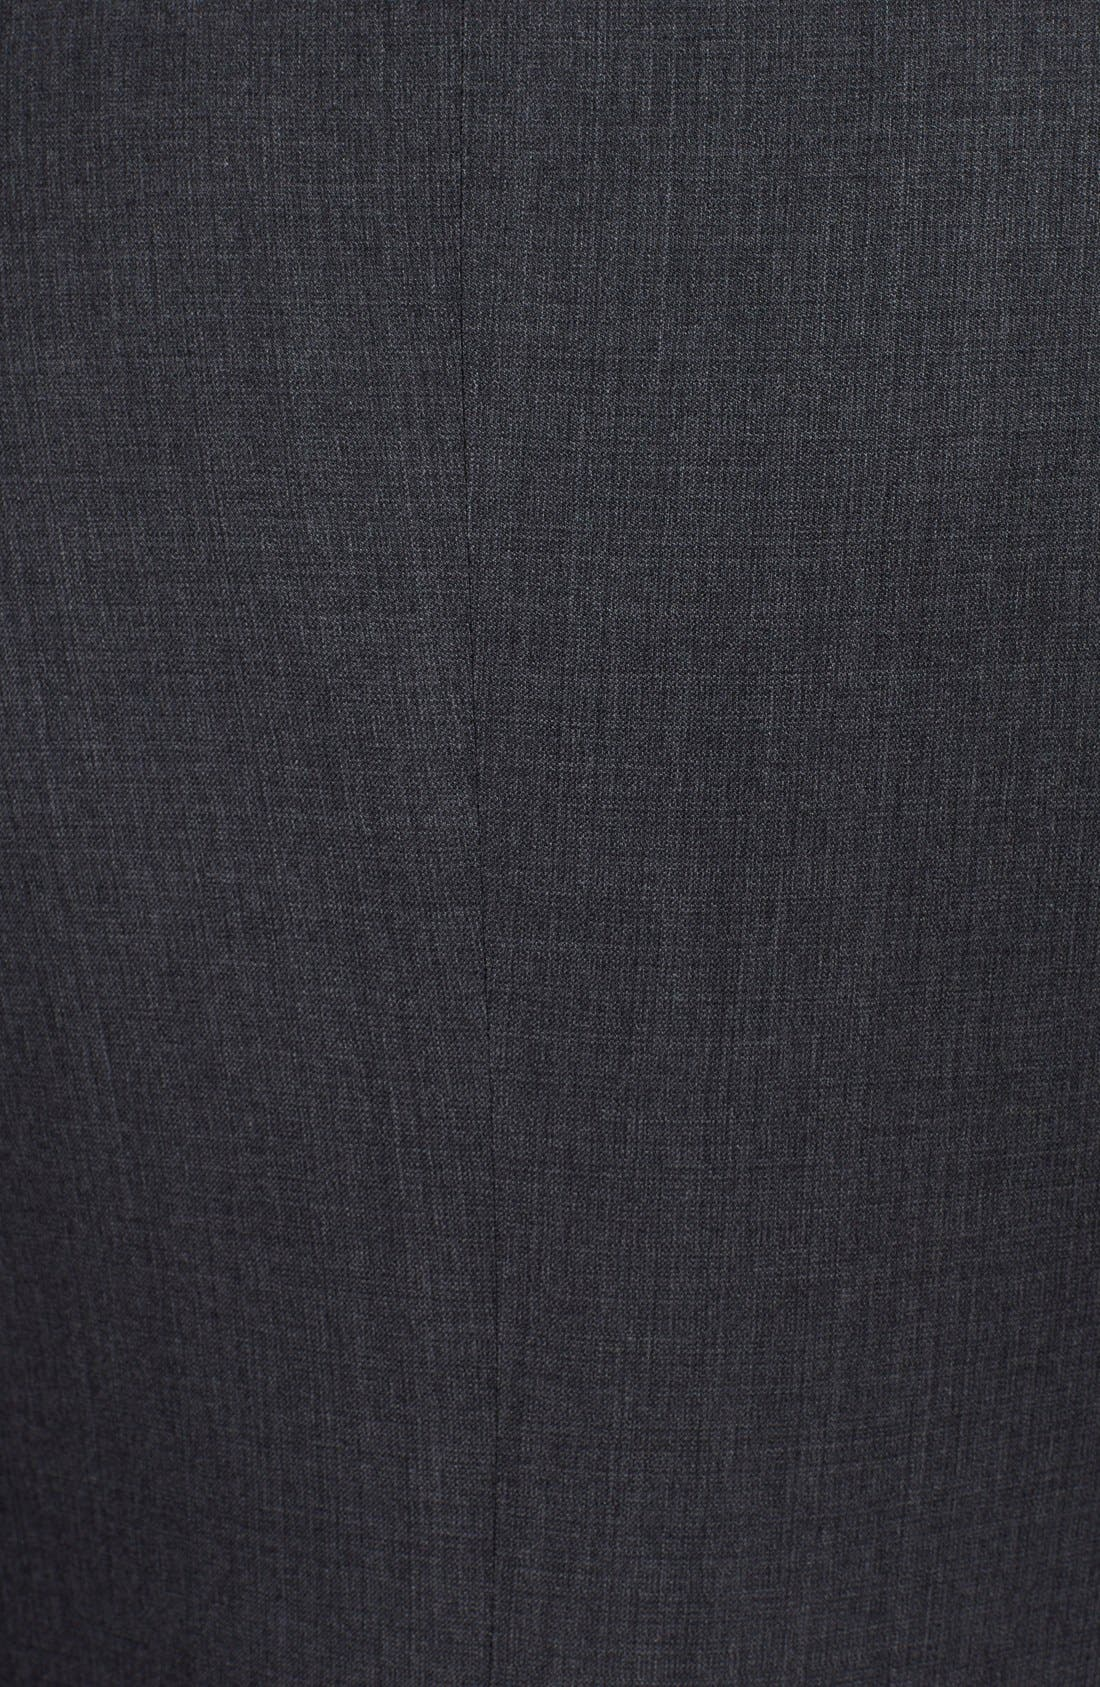 Alternate Image 5  - Armani Collezioni 'Sartorial' Grey Wool Suit